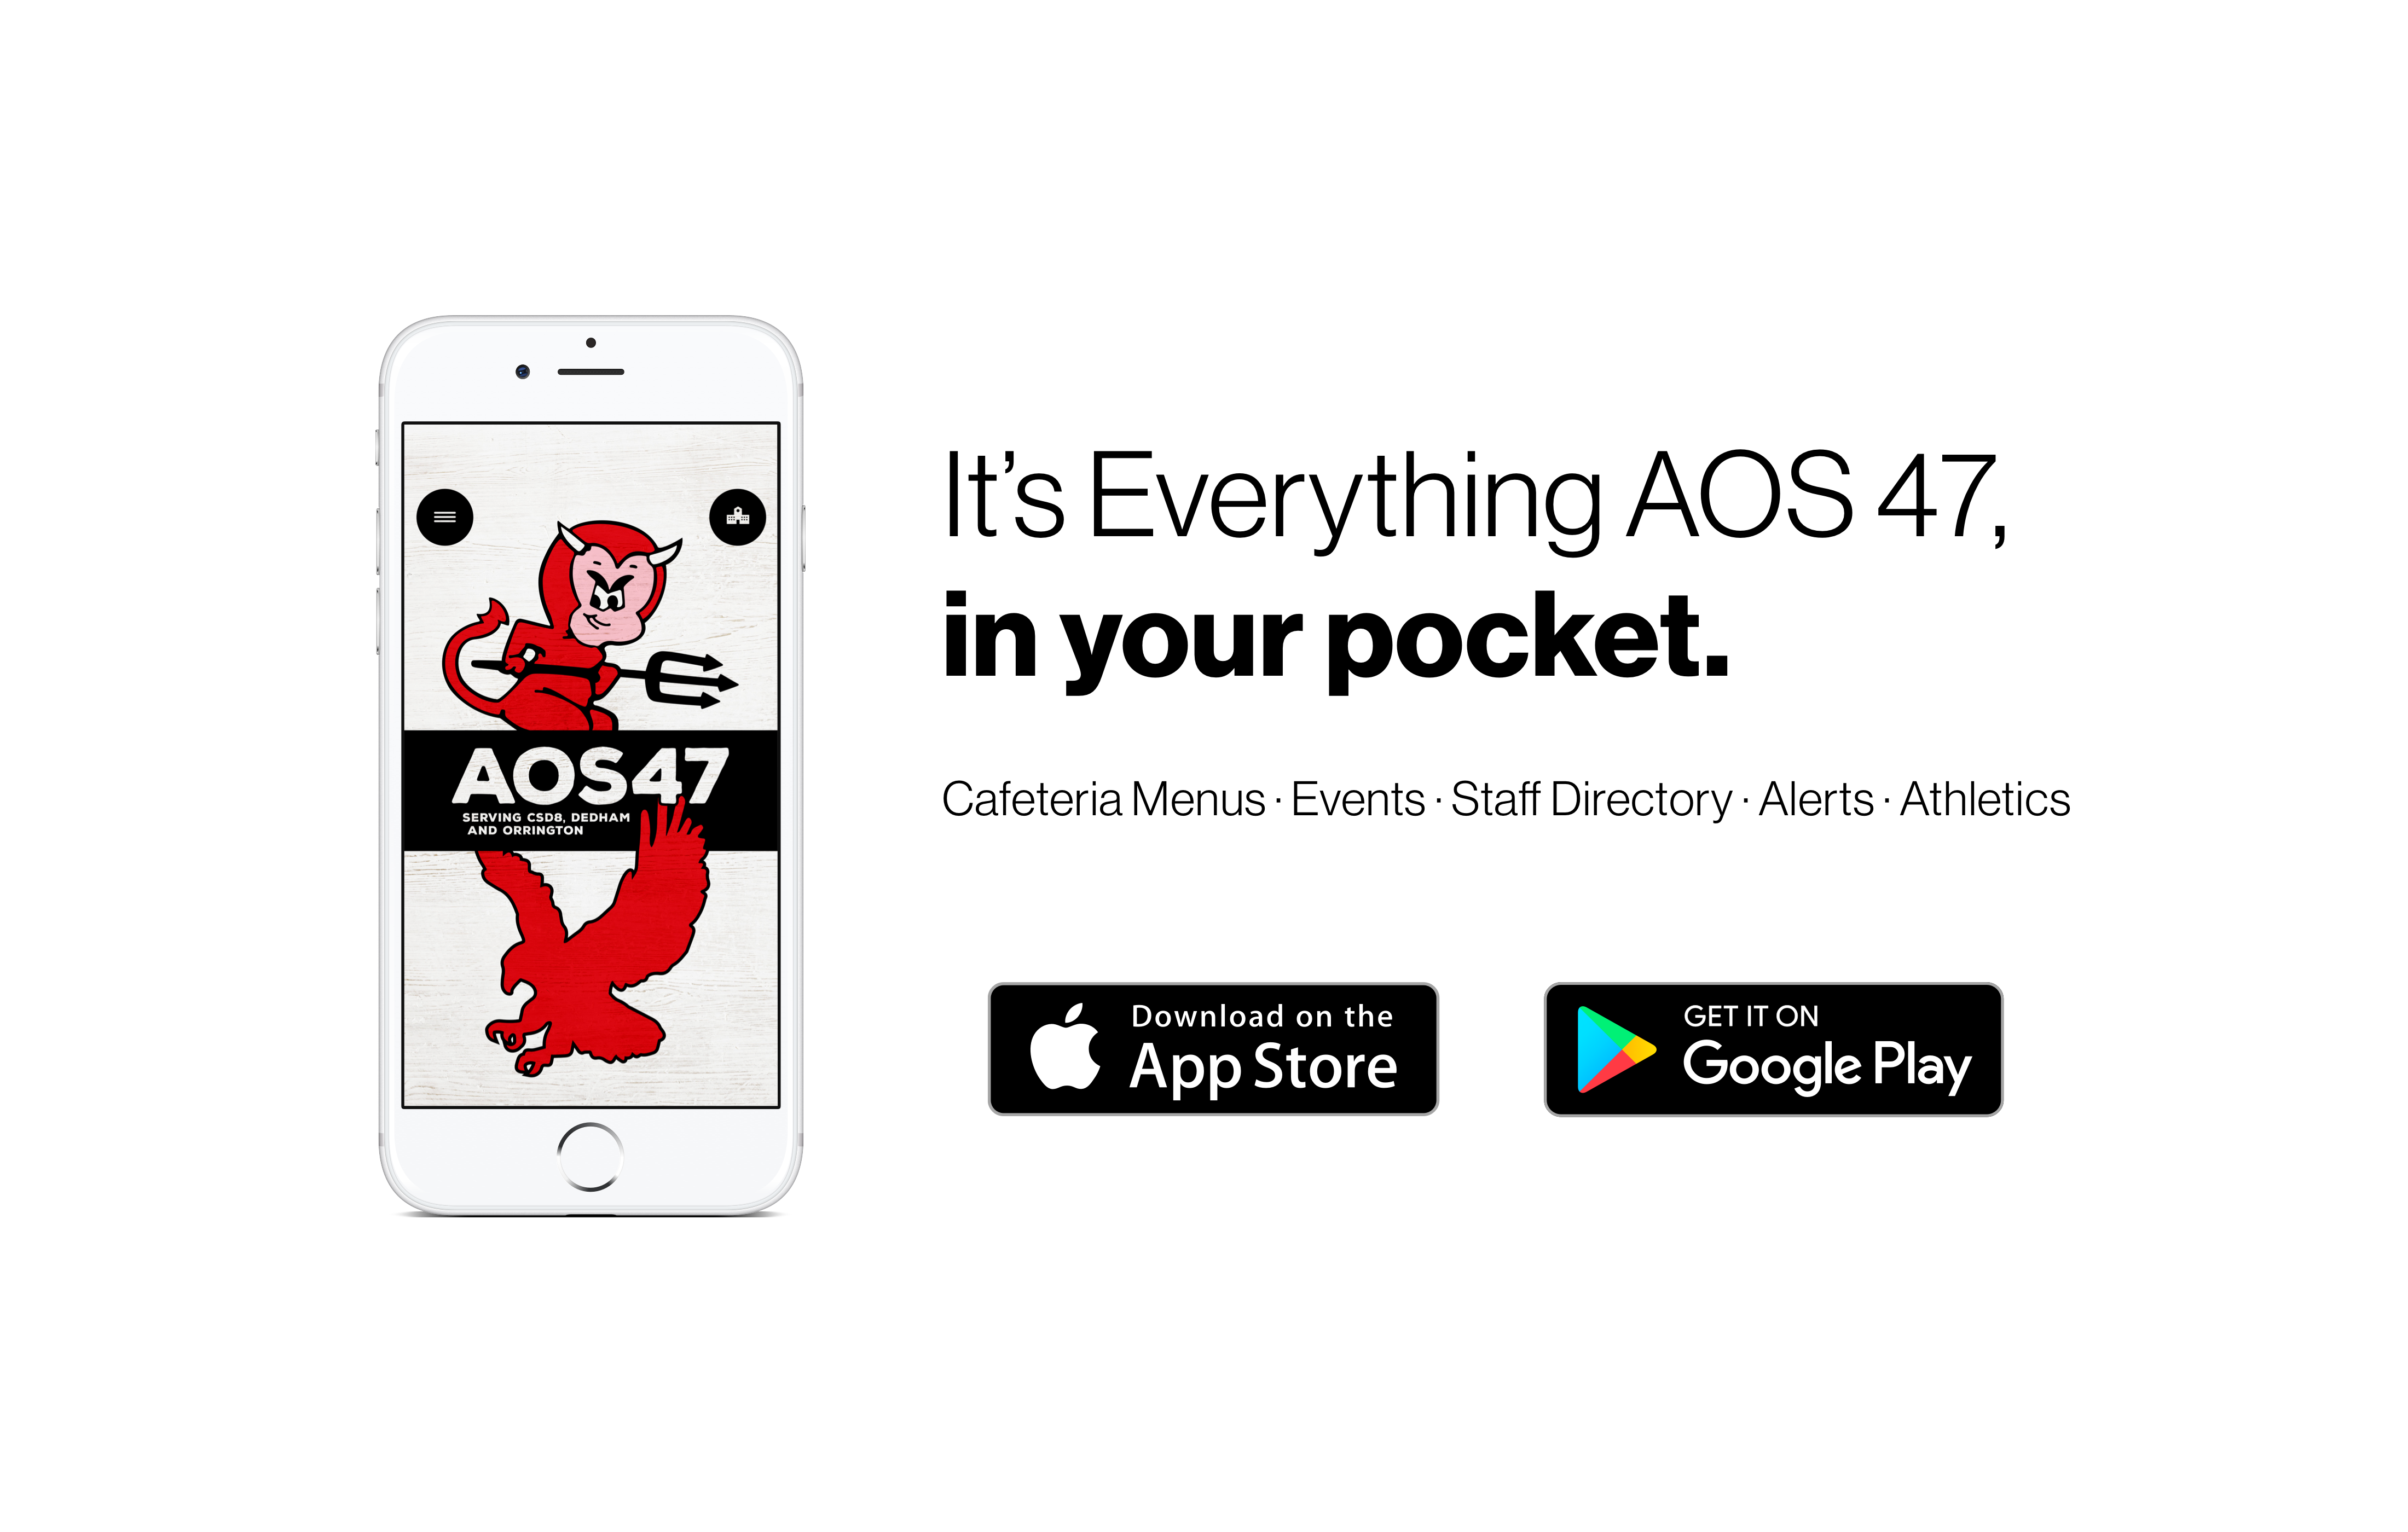 Everything AOS 47, in your pocket